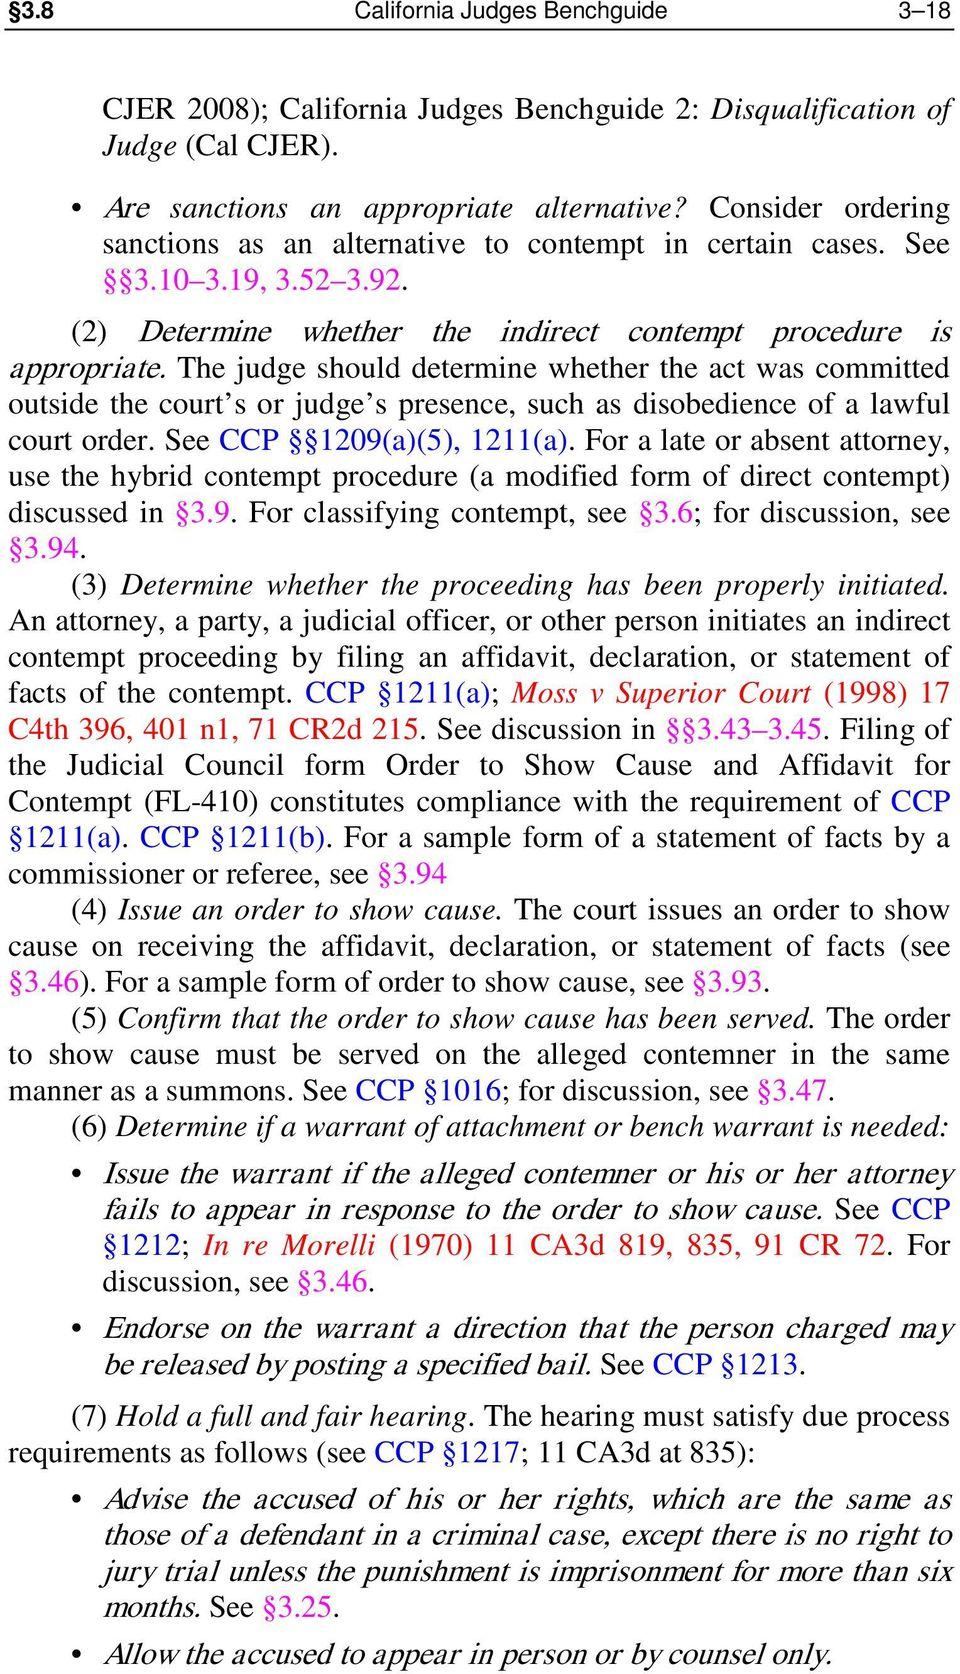 The judge should determine whether the act was committed outside the court s or judge s presence, such as disobedience of a lawful court order. See CCP 1209(a)(5), 1211(a).